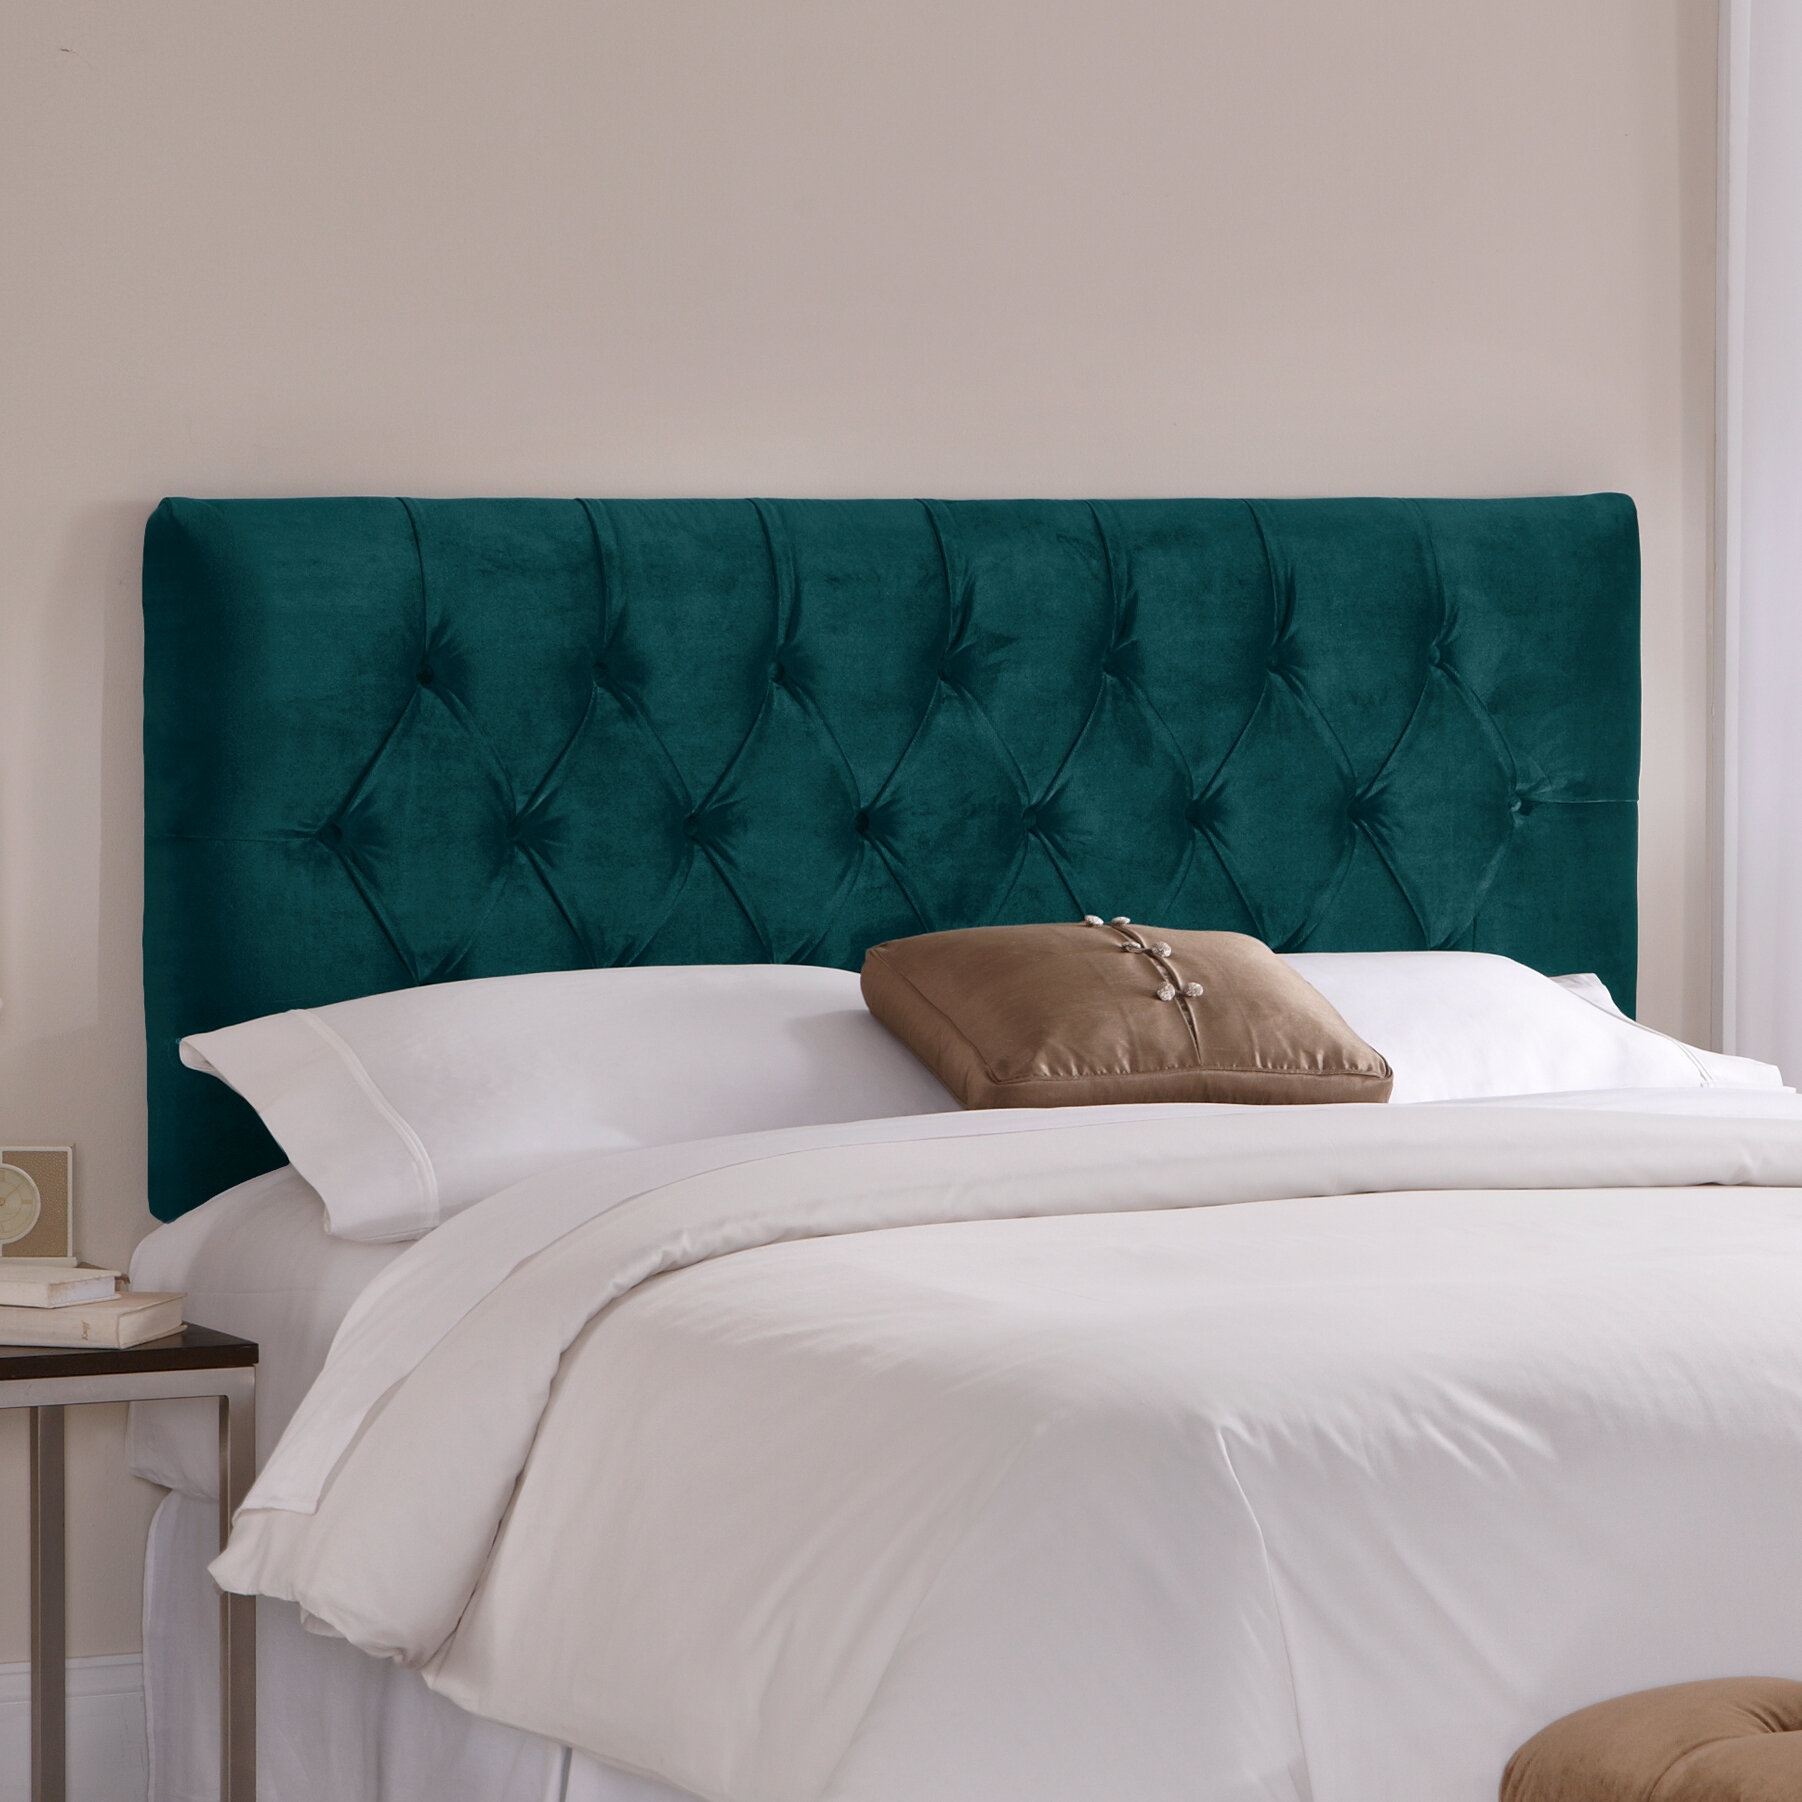 to create seat city tips lifestyle headboard bench design cool for white and teal bedroom with ideas relaxing turuqoise the